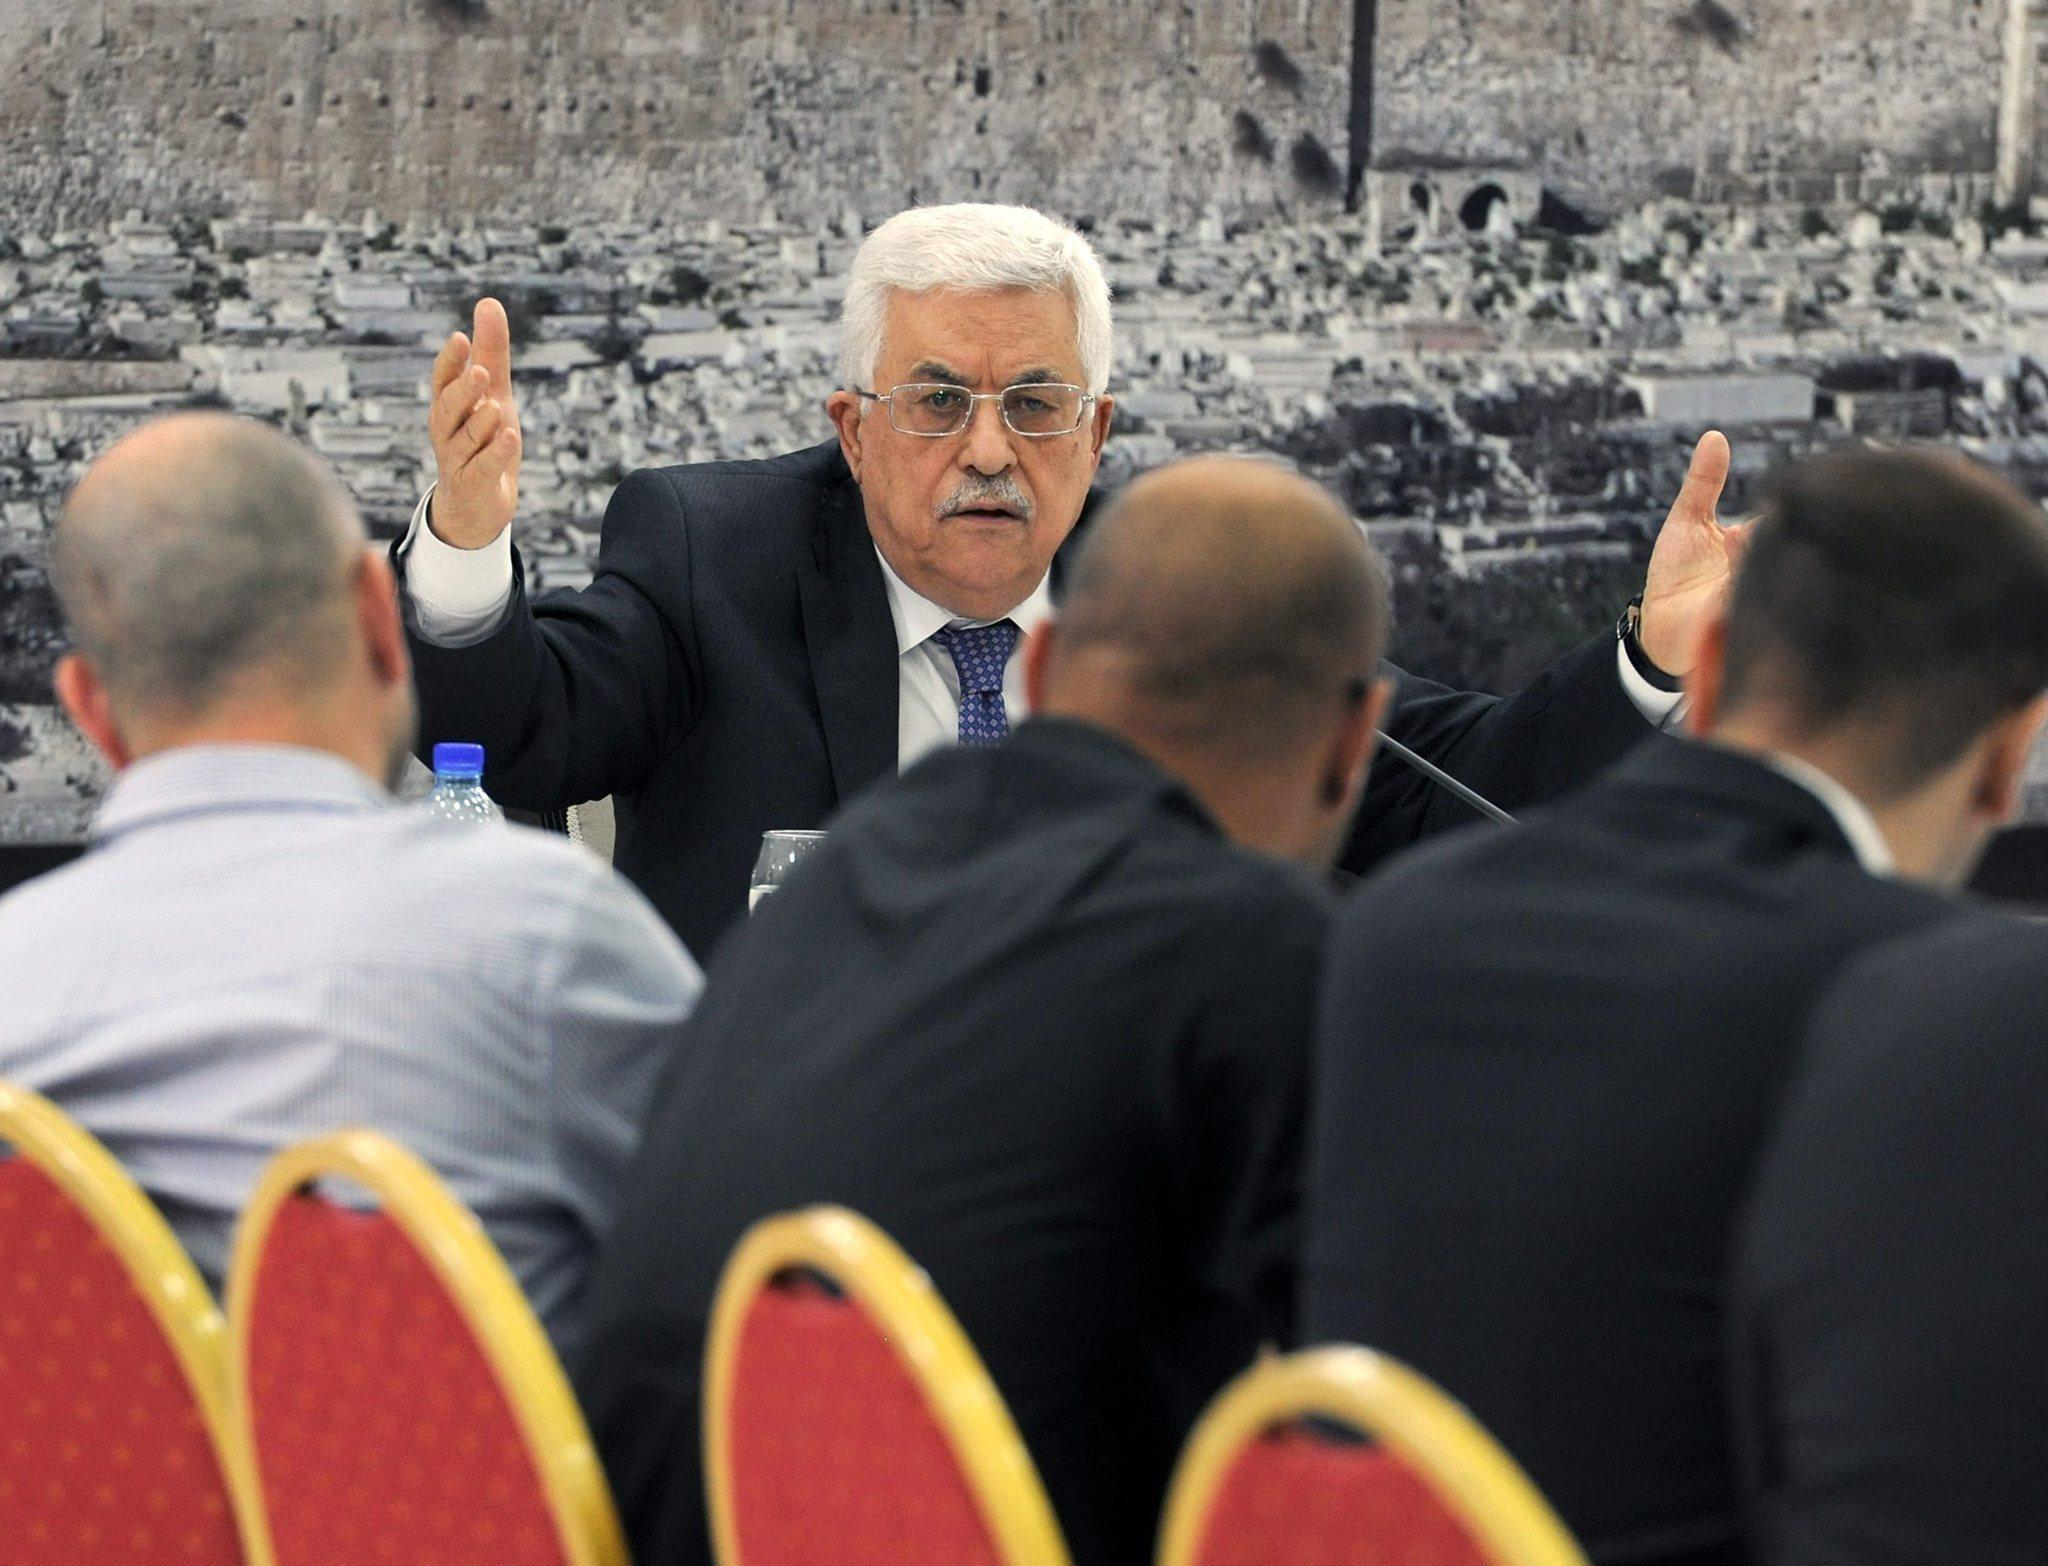 Palestinian Authority President Mahmoud Abbas, center, meets with members of the Palestinian leadership in Ramallah, West Bank.